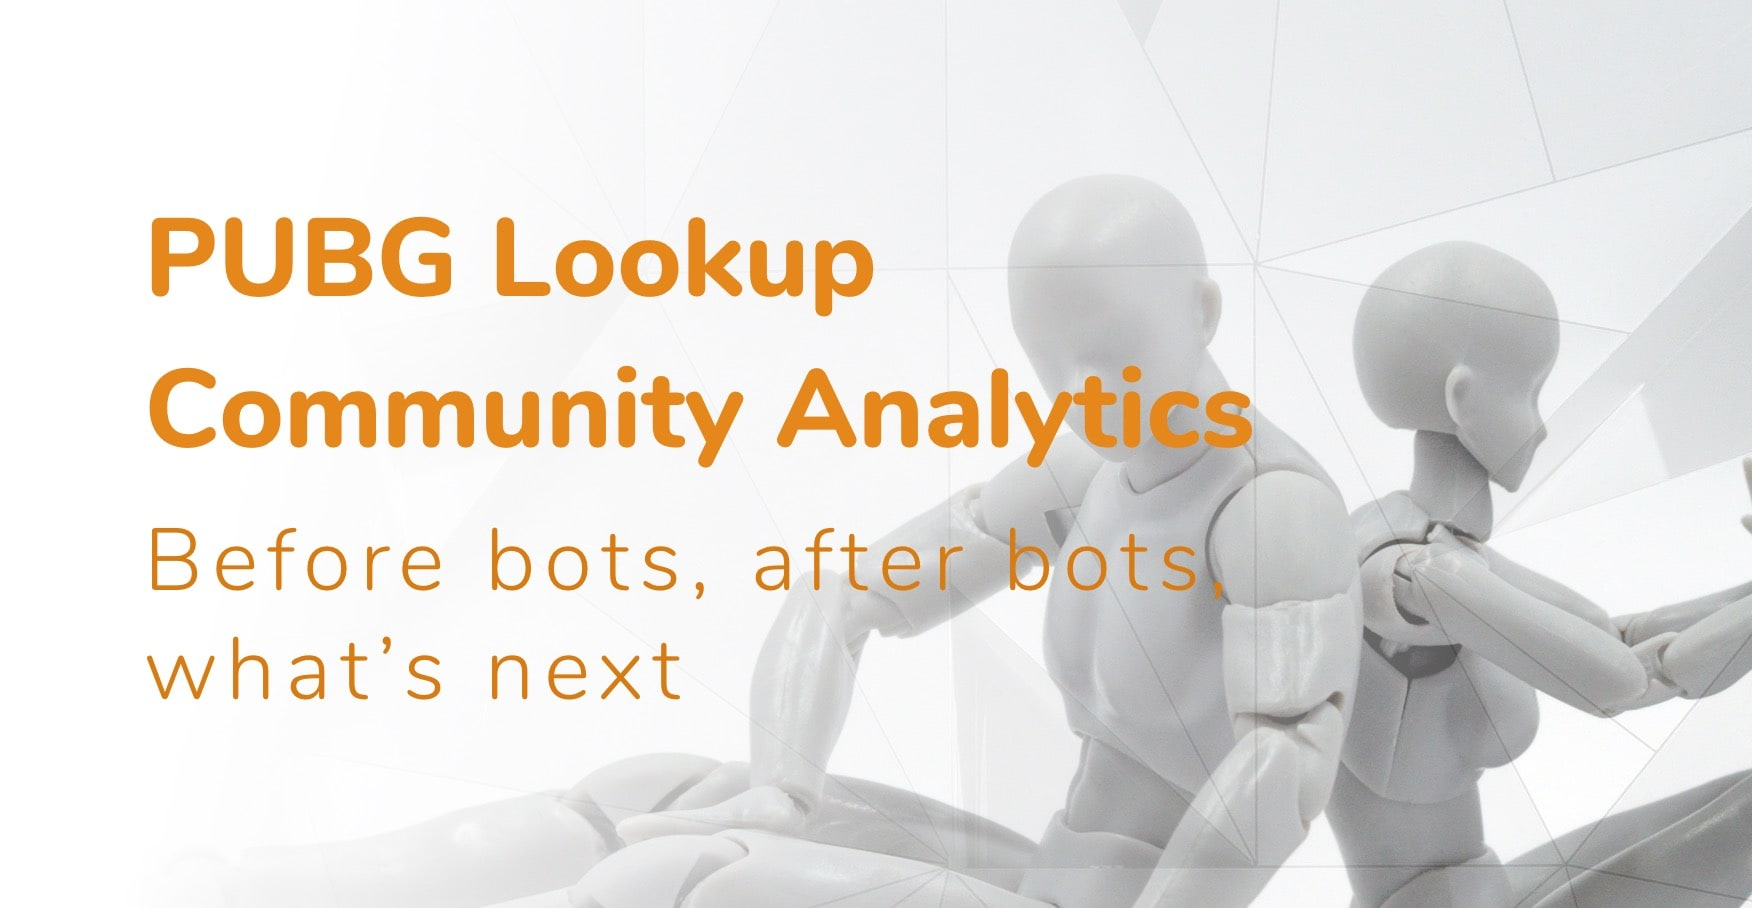 Community analytics in the age of bots